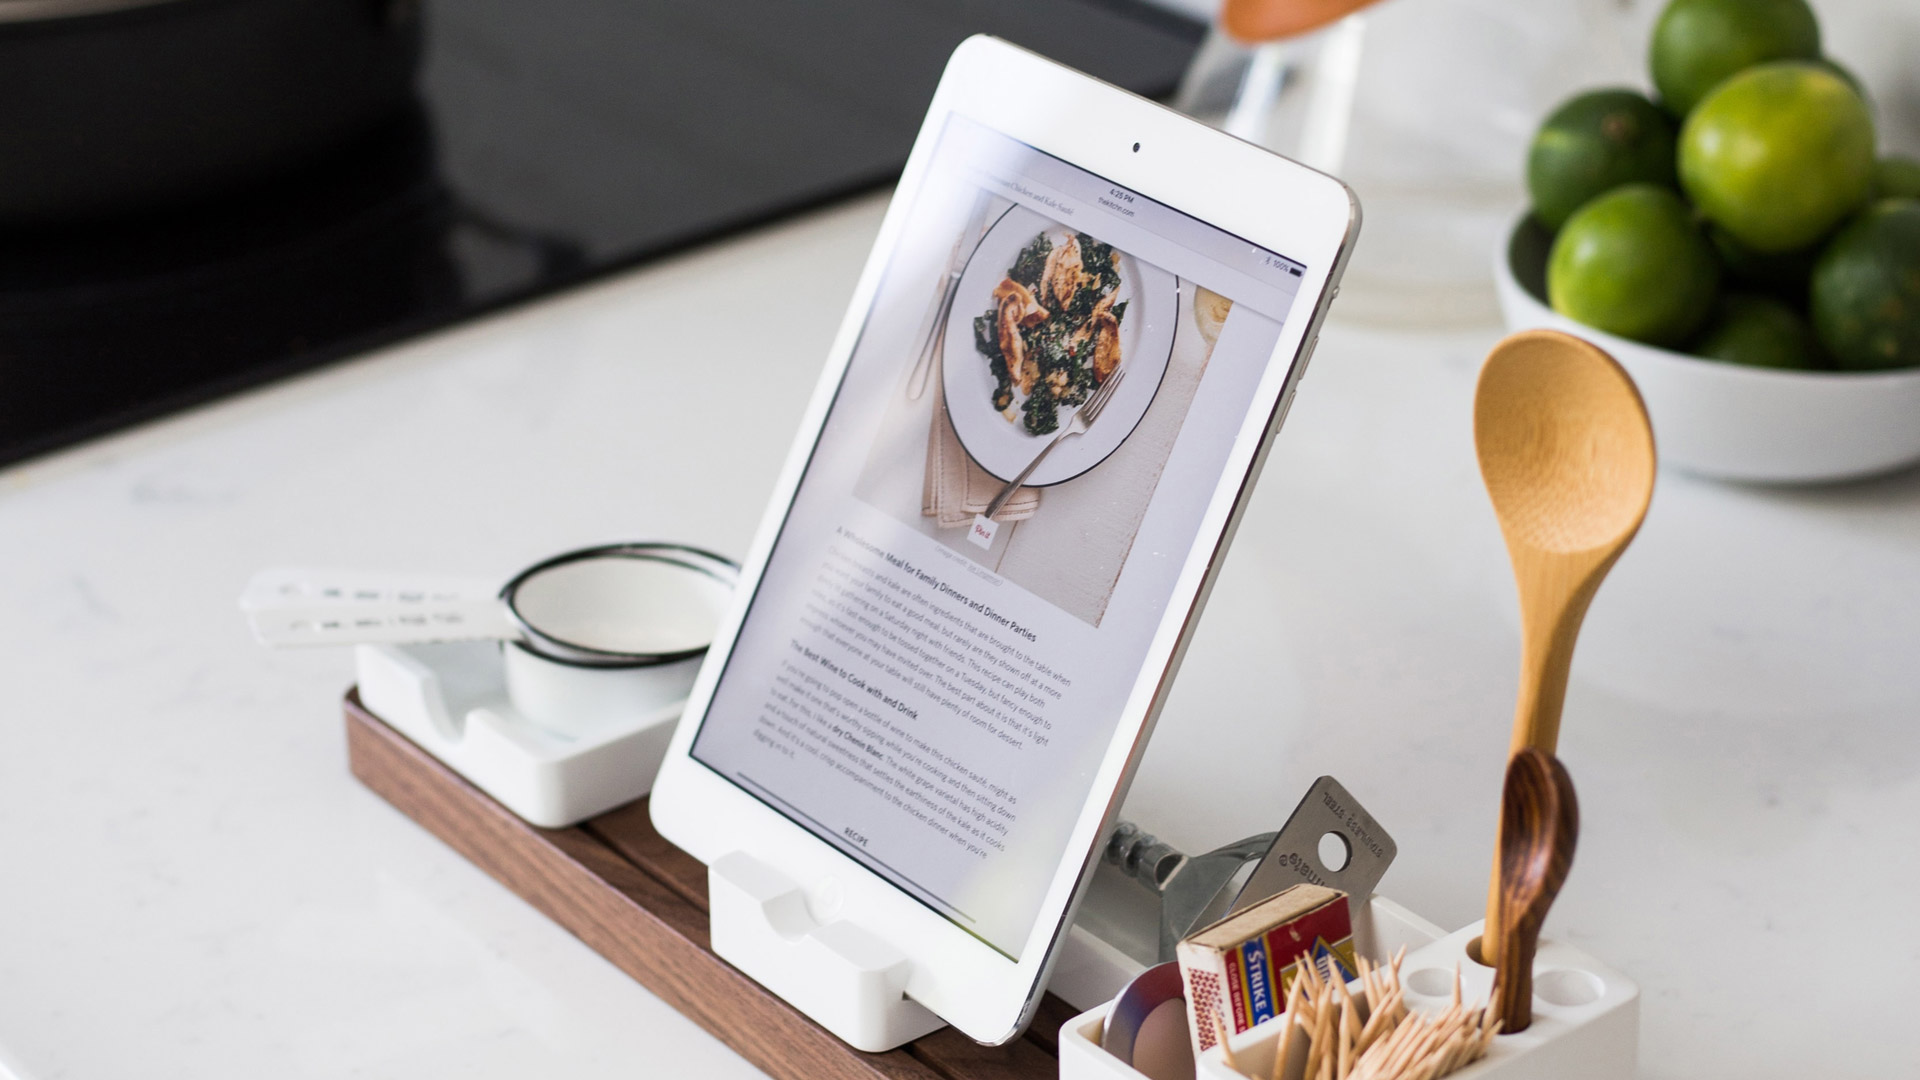 iPad showing recipe and cooking implements on kitchen counter